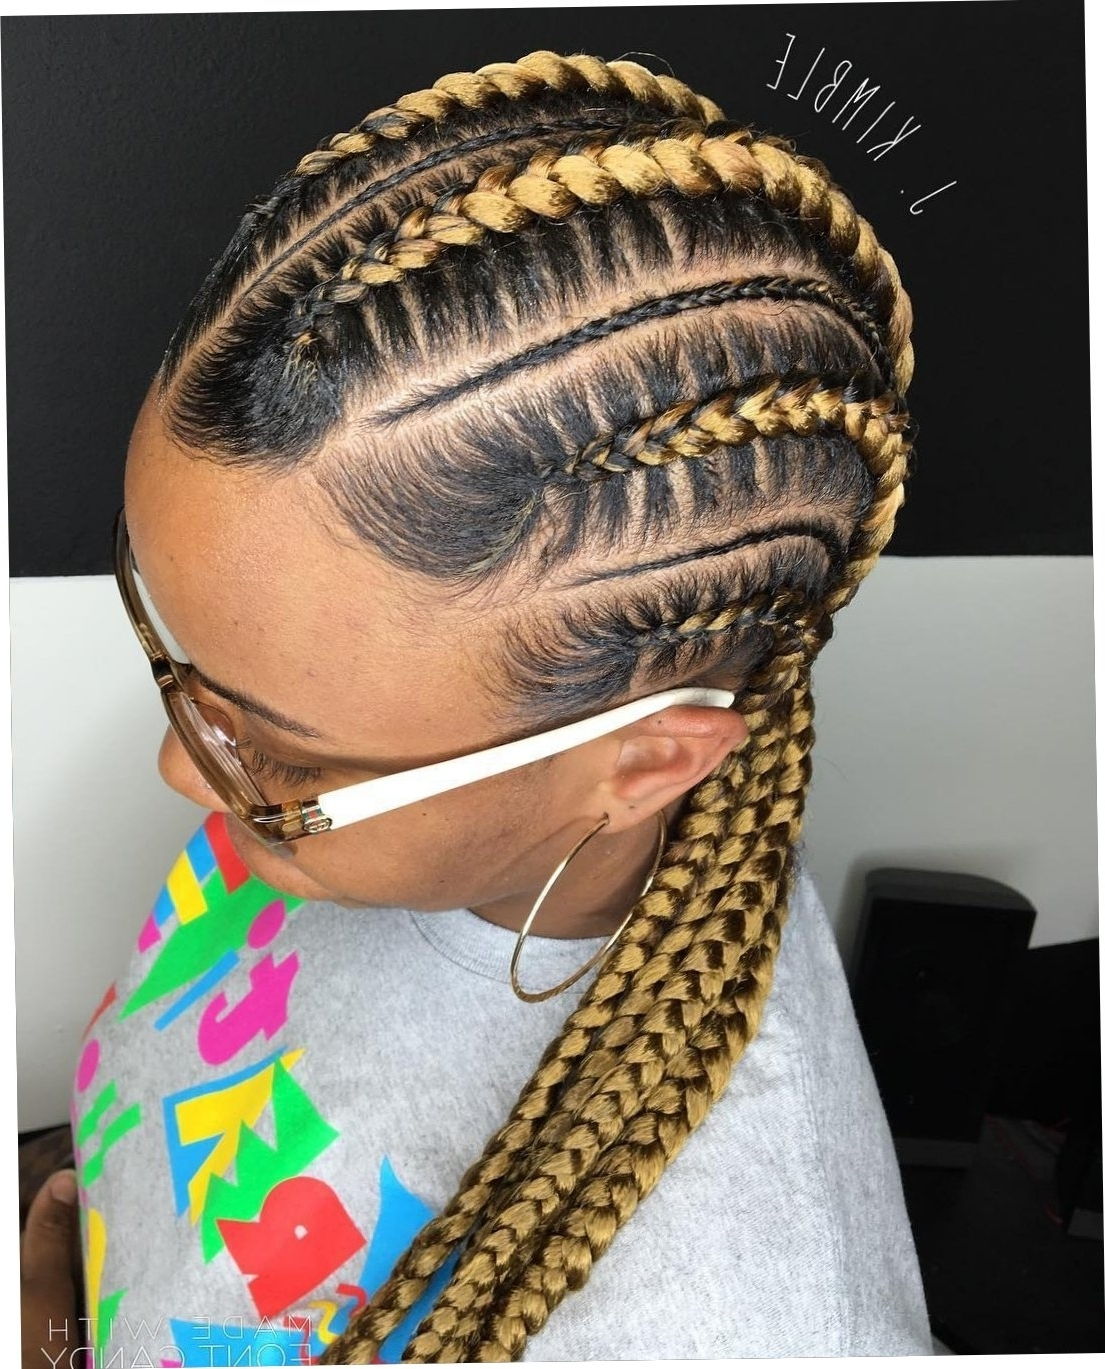 Widely Used Cornrows Hairstyles For Round Faces With Regard To Cornrows Styles For Oval Faces Cornrow Hairstyles For Round Faces (View 15 of 15)